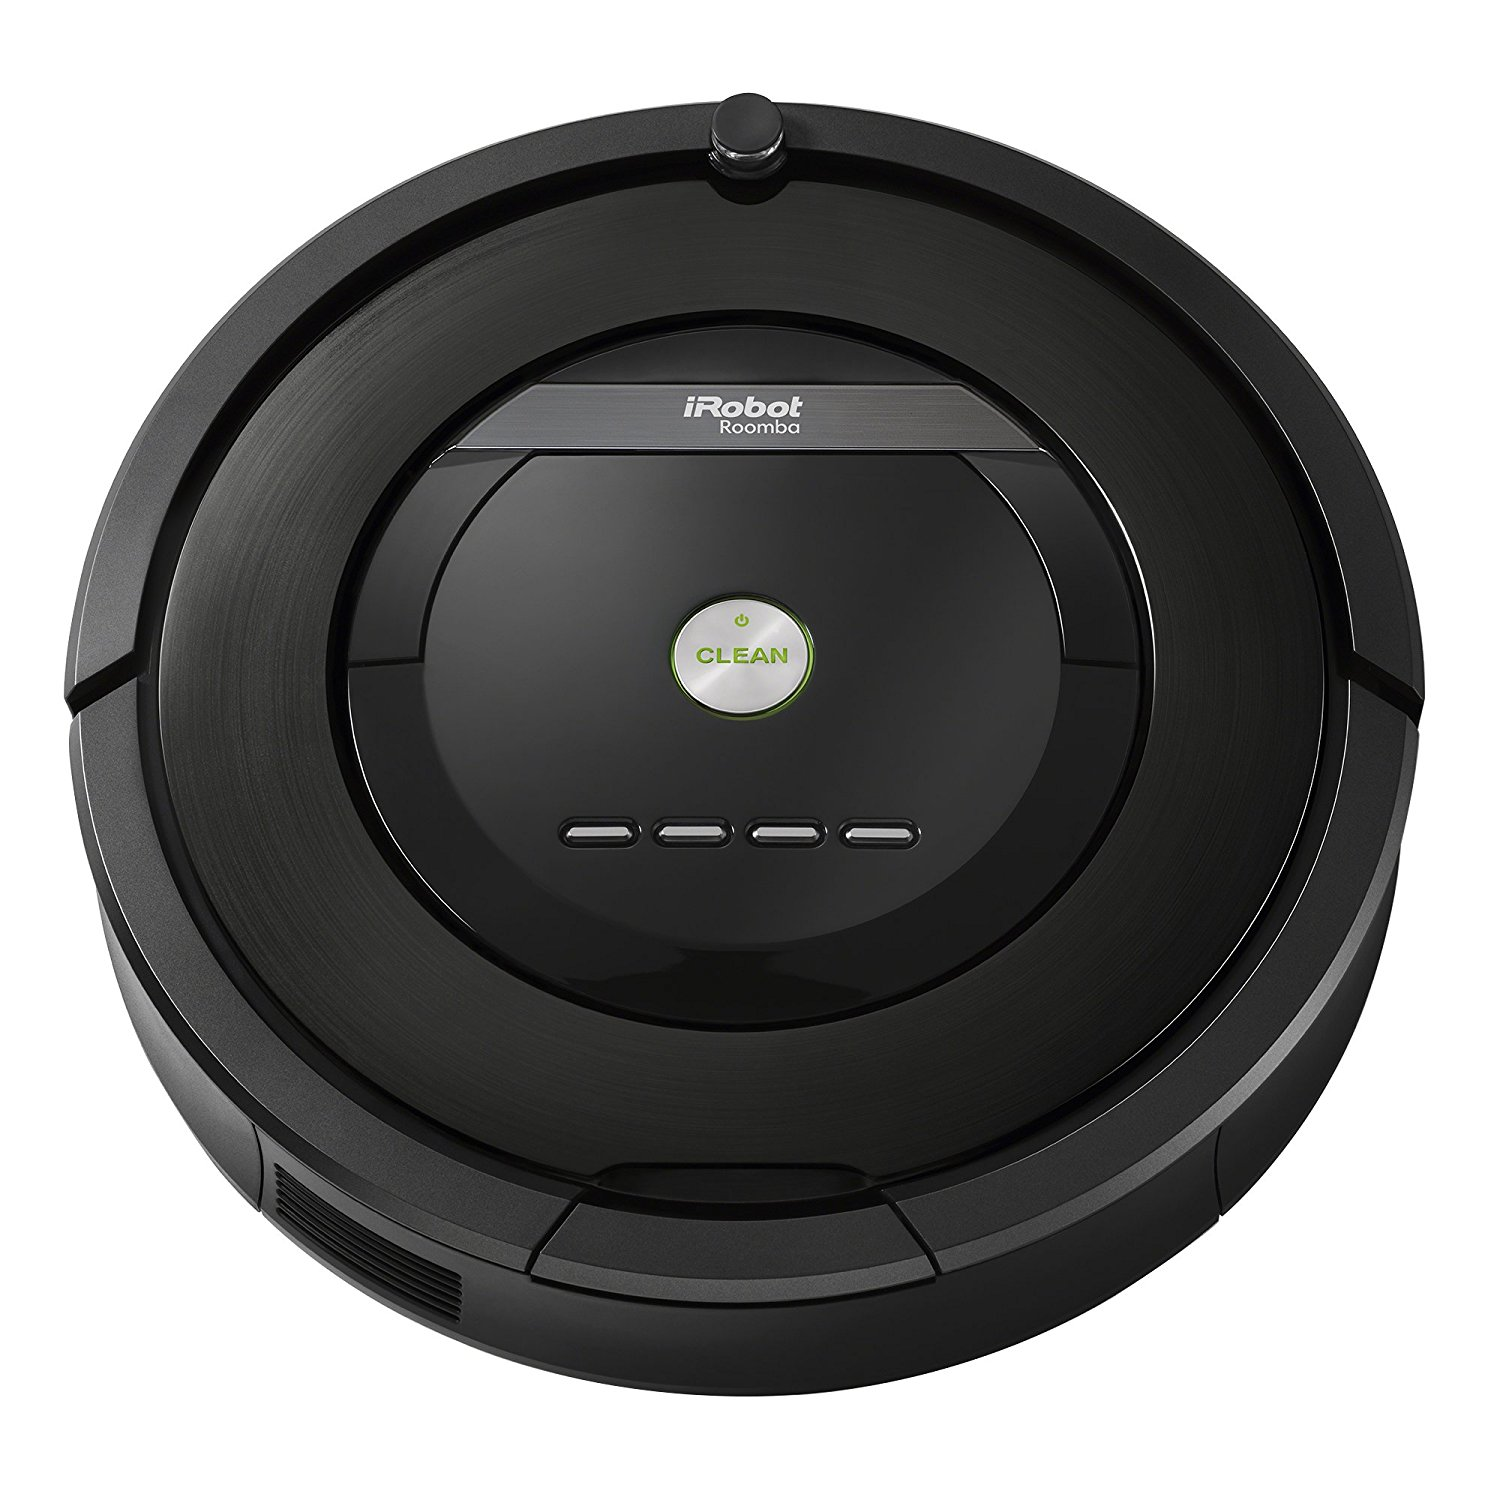 iRobot Roomba 880 Robot Vacuum Review